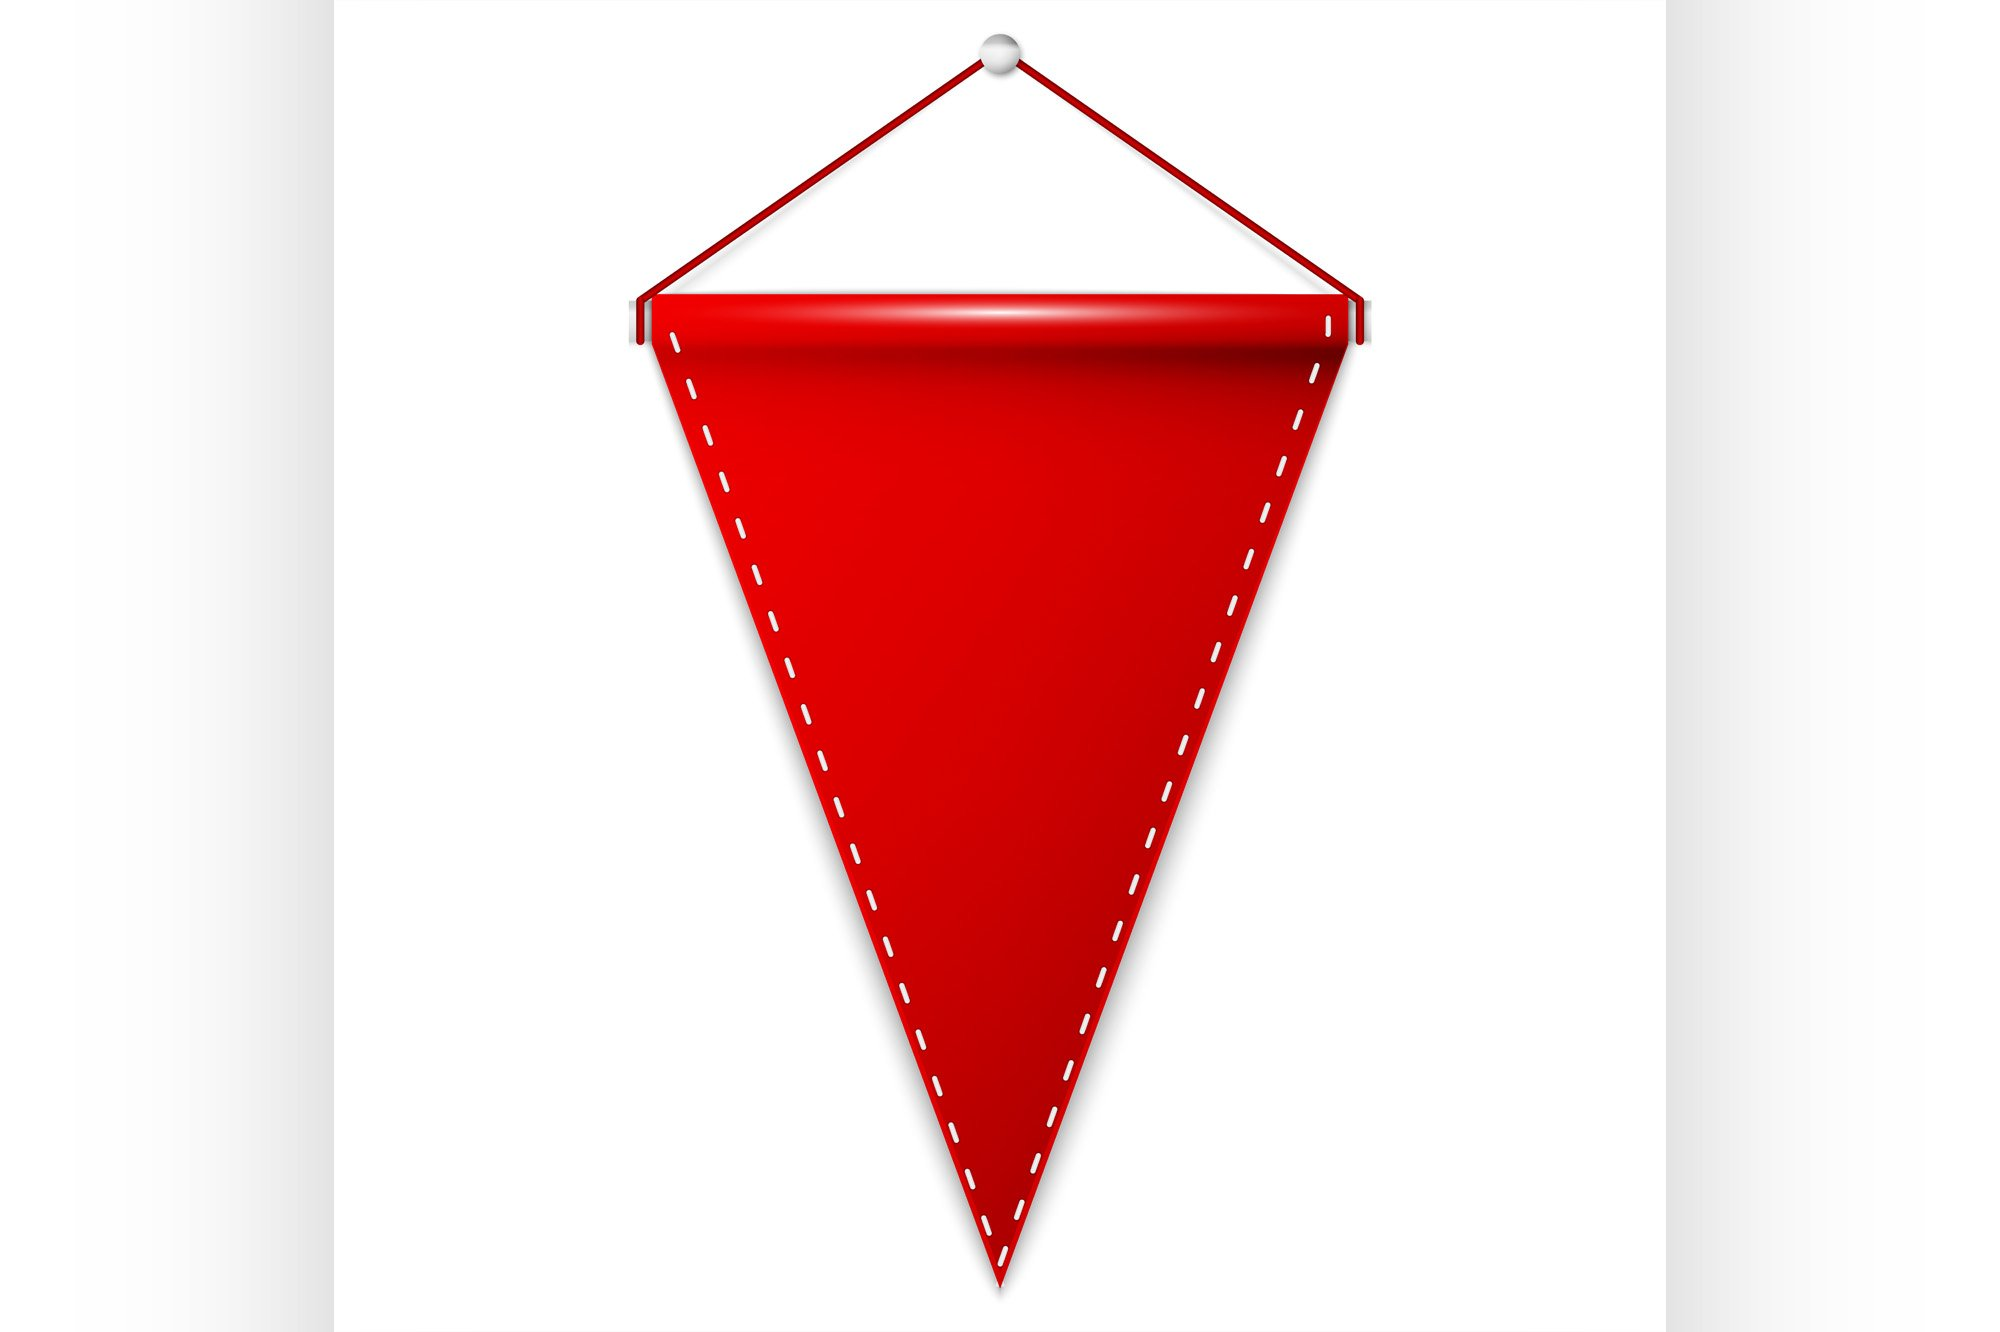 Red pennant hanging, mockup example image 1